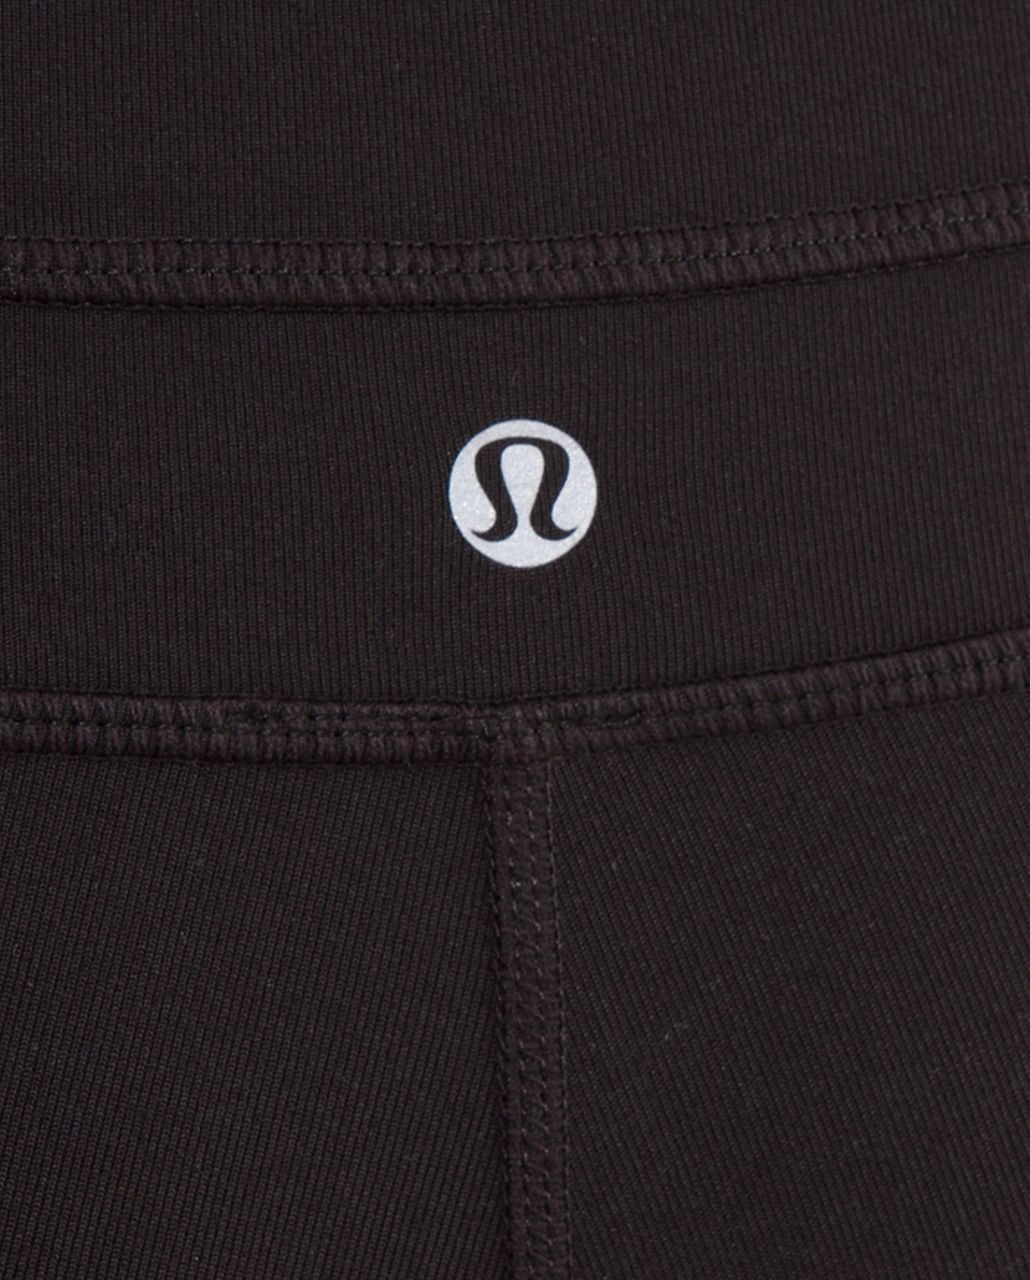 Lululemon Groove Pant (Regular) - Black